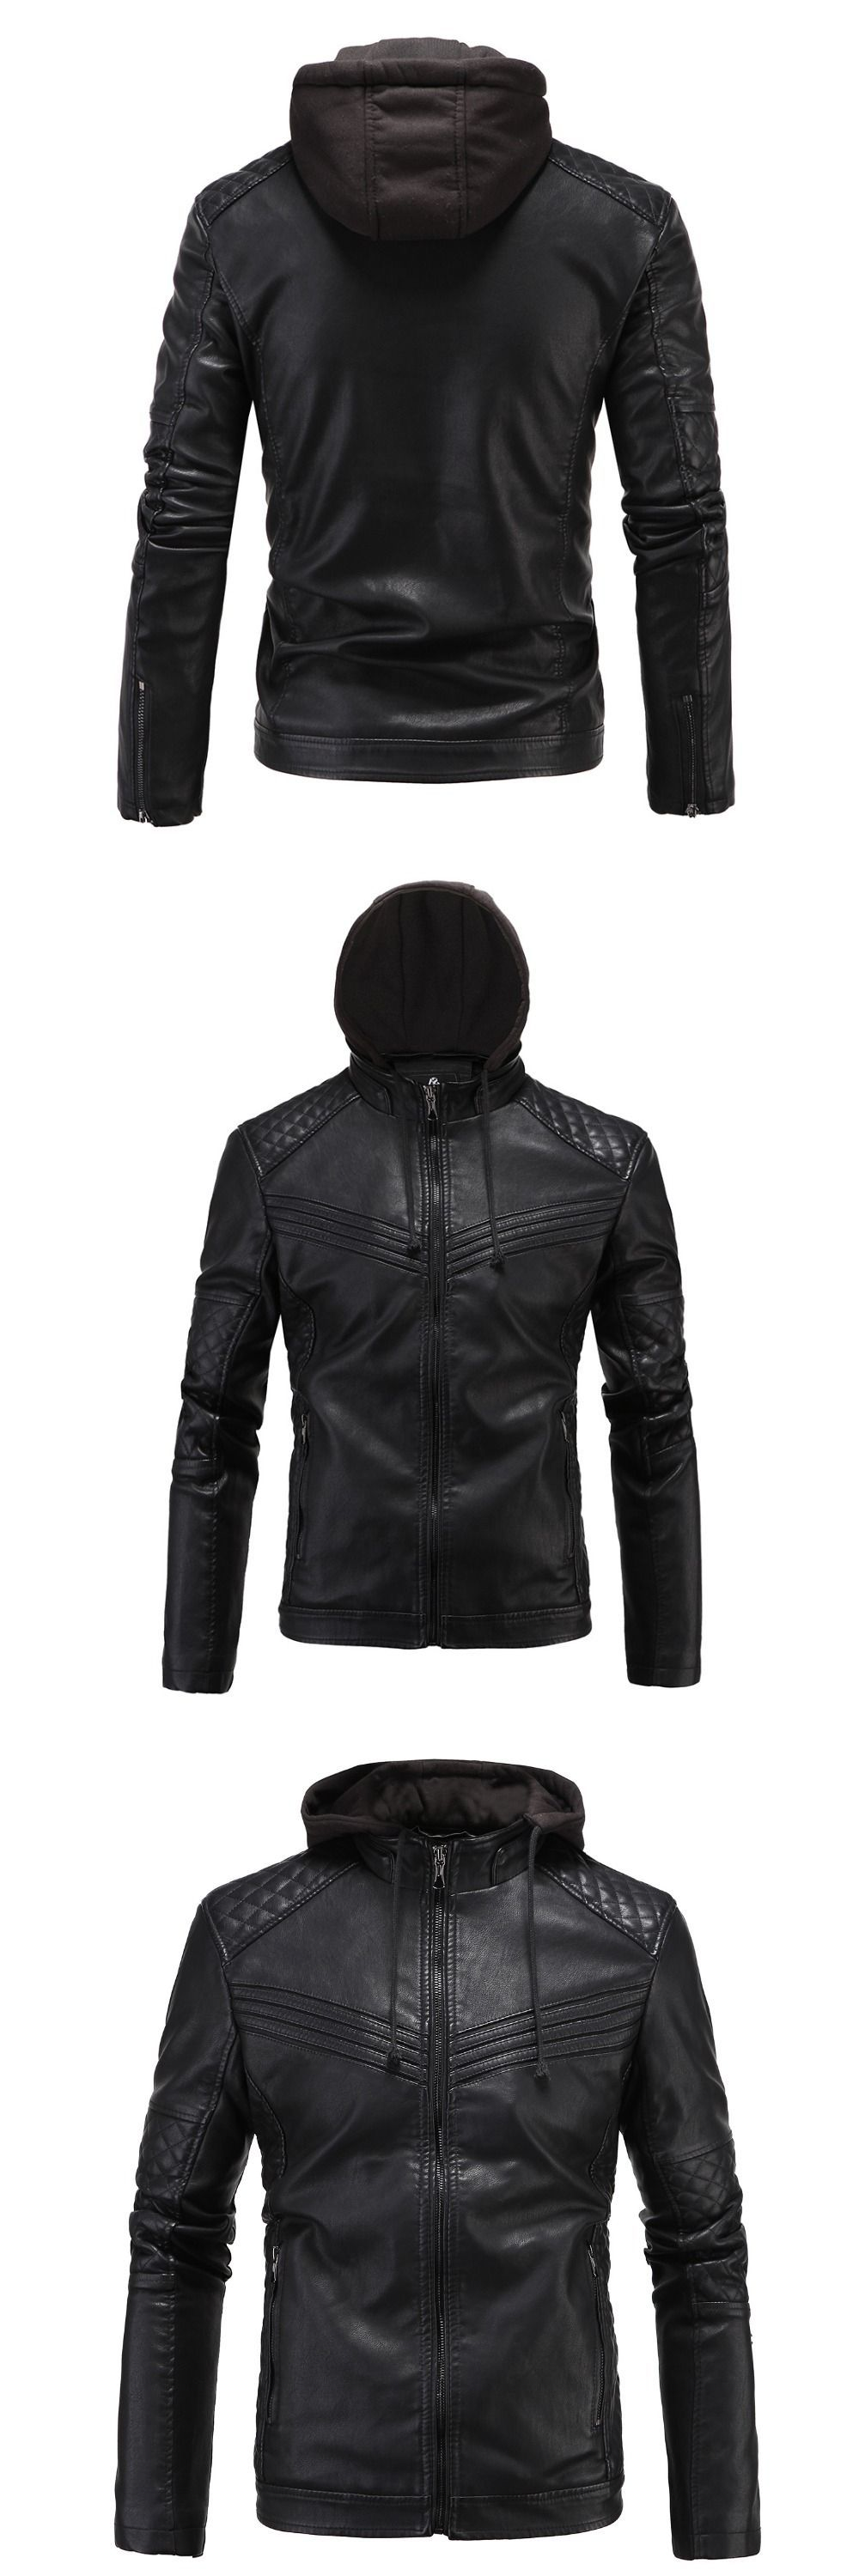 Black PU leather motorcycle jacket bestselling mens